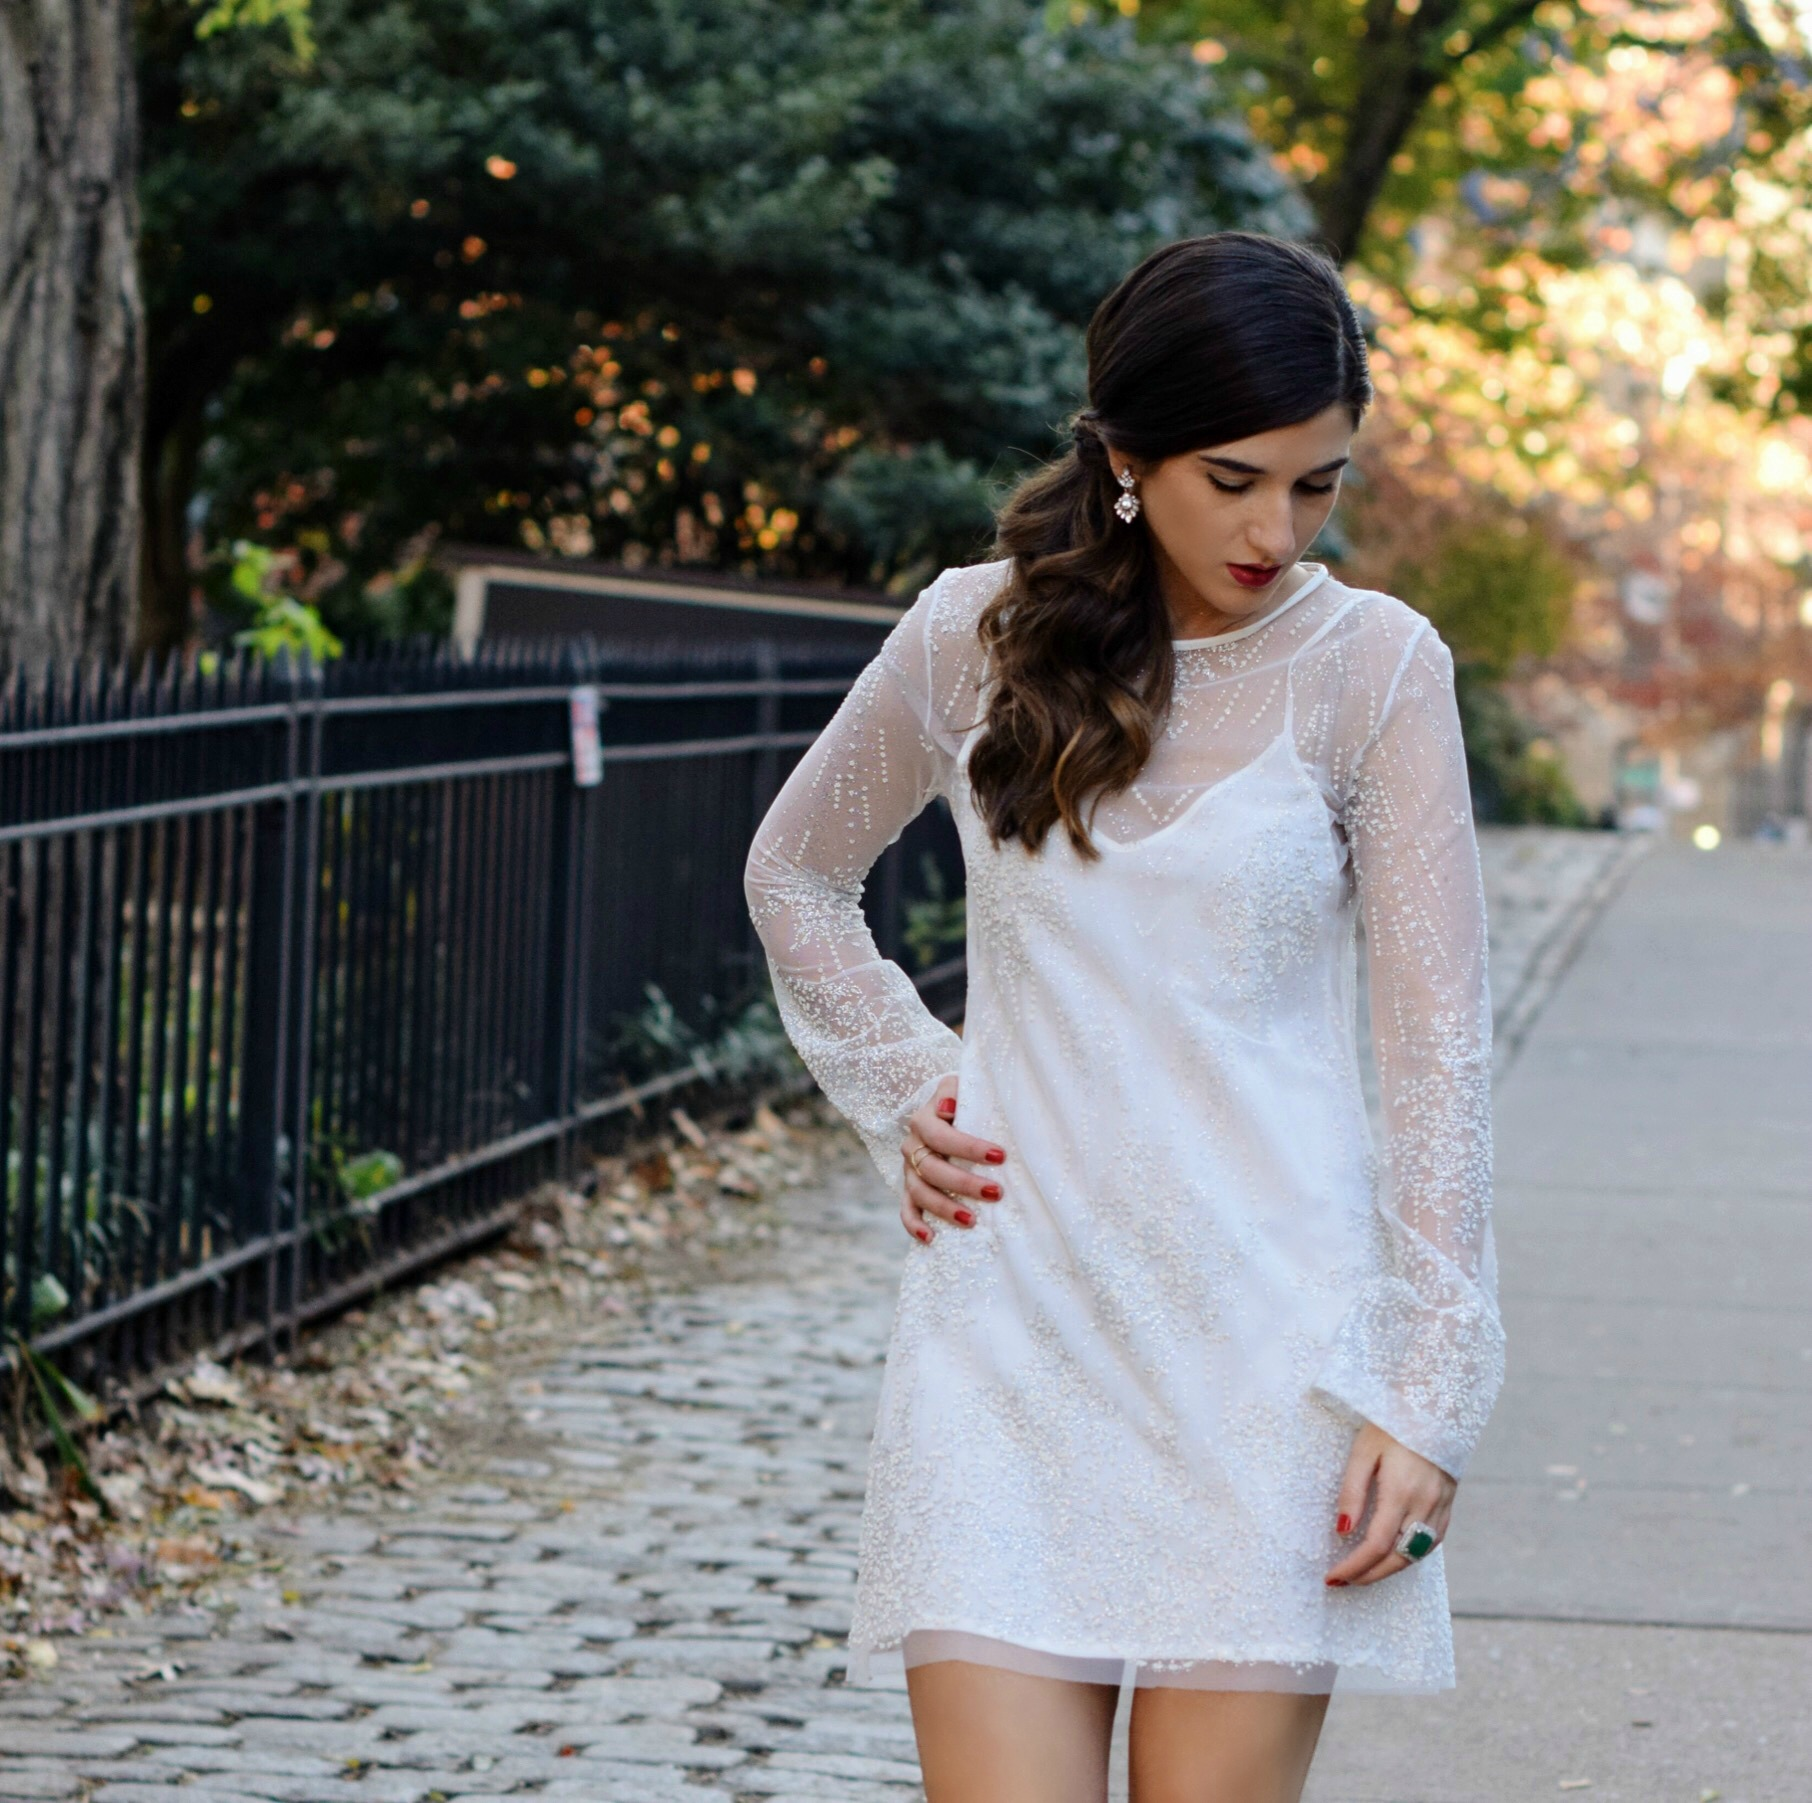 Holiday Look White Glitter Dress Elahn Jewels Louboutins & Love Fashion Blog Esther Santer NYC Street Style Blogger Diamond Rings Happiness Boutique Earrings Emerald Beautiful Fine Jewelry Women Girl Model Outfit Inspo OOTD Shoes Black Heels Shopping.jpg